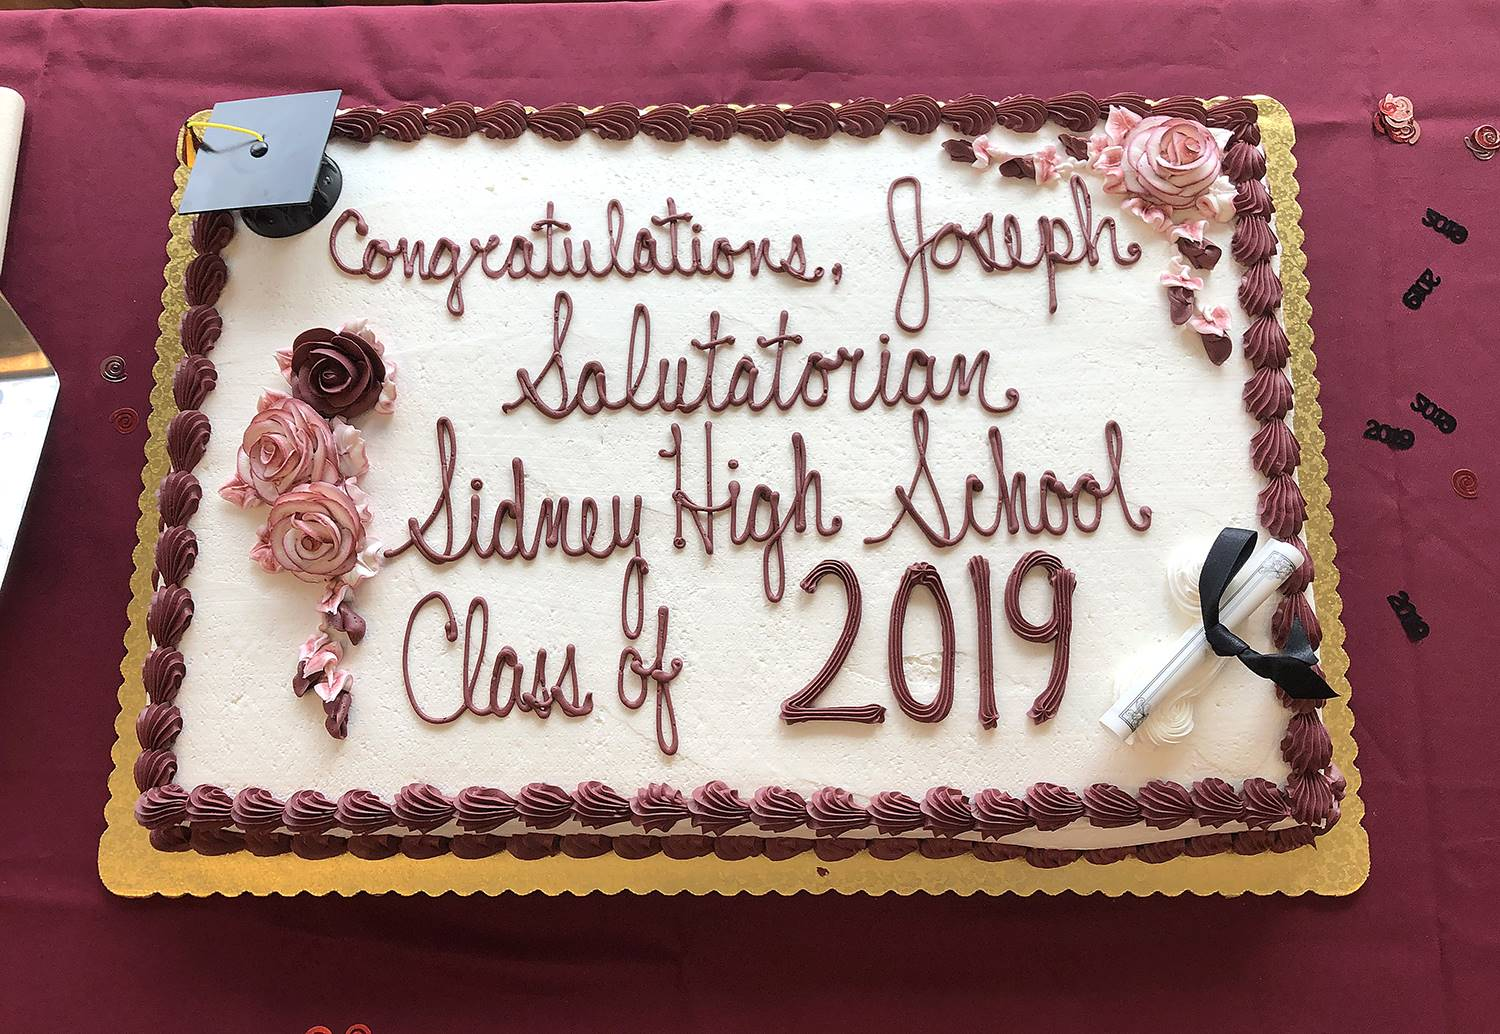 Valedictorian-Salutatorian celebration 2019